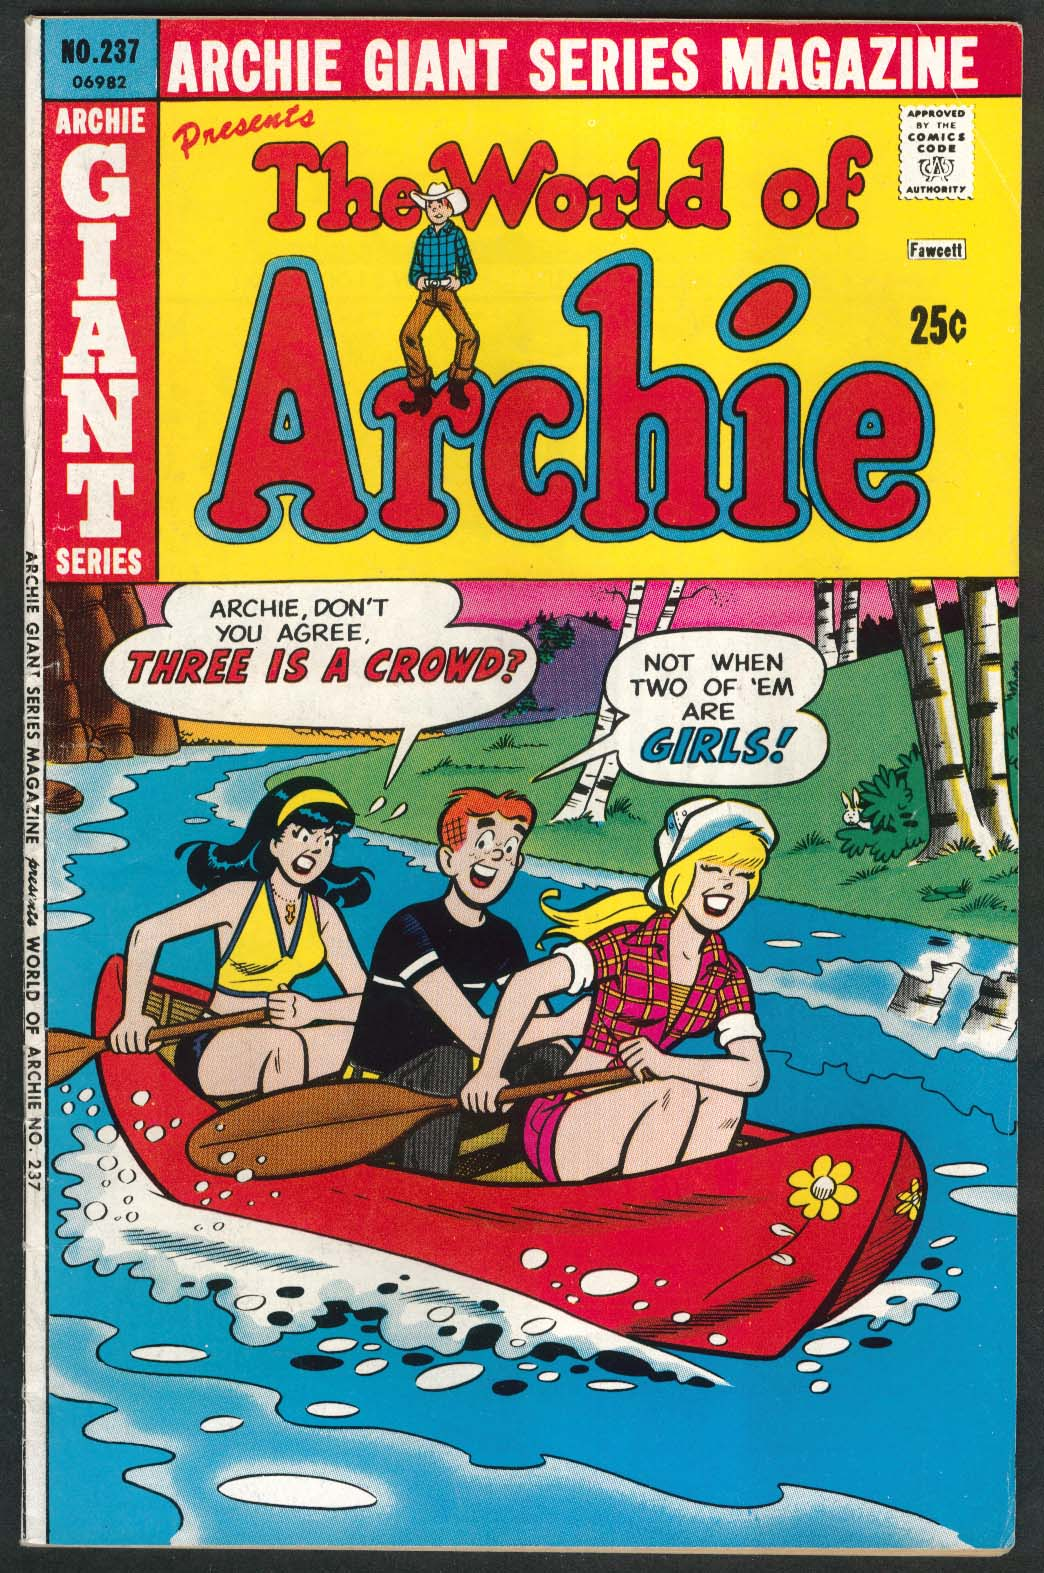 ARCHIE GIANT SERIES MAGAZINE #237 The World of Archie comic book 9 1975